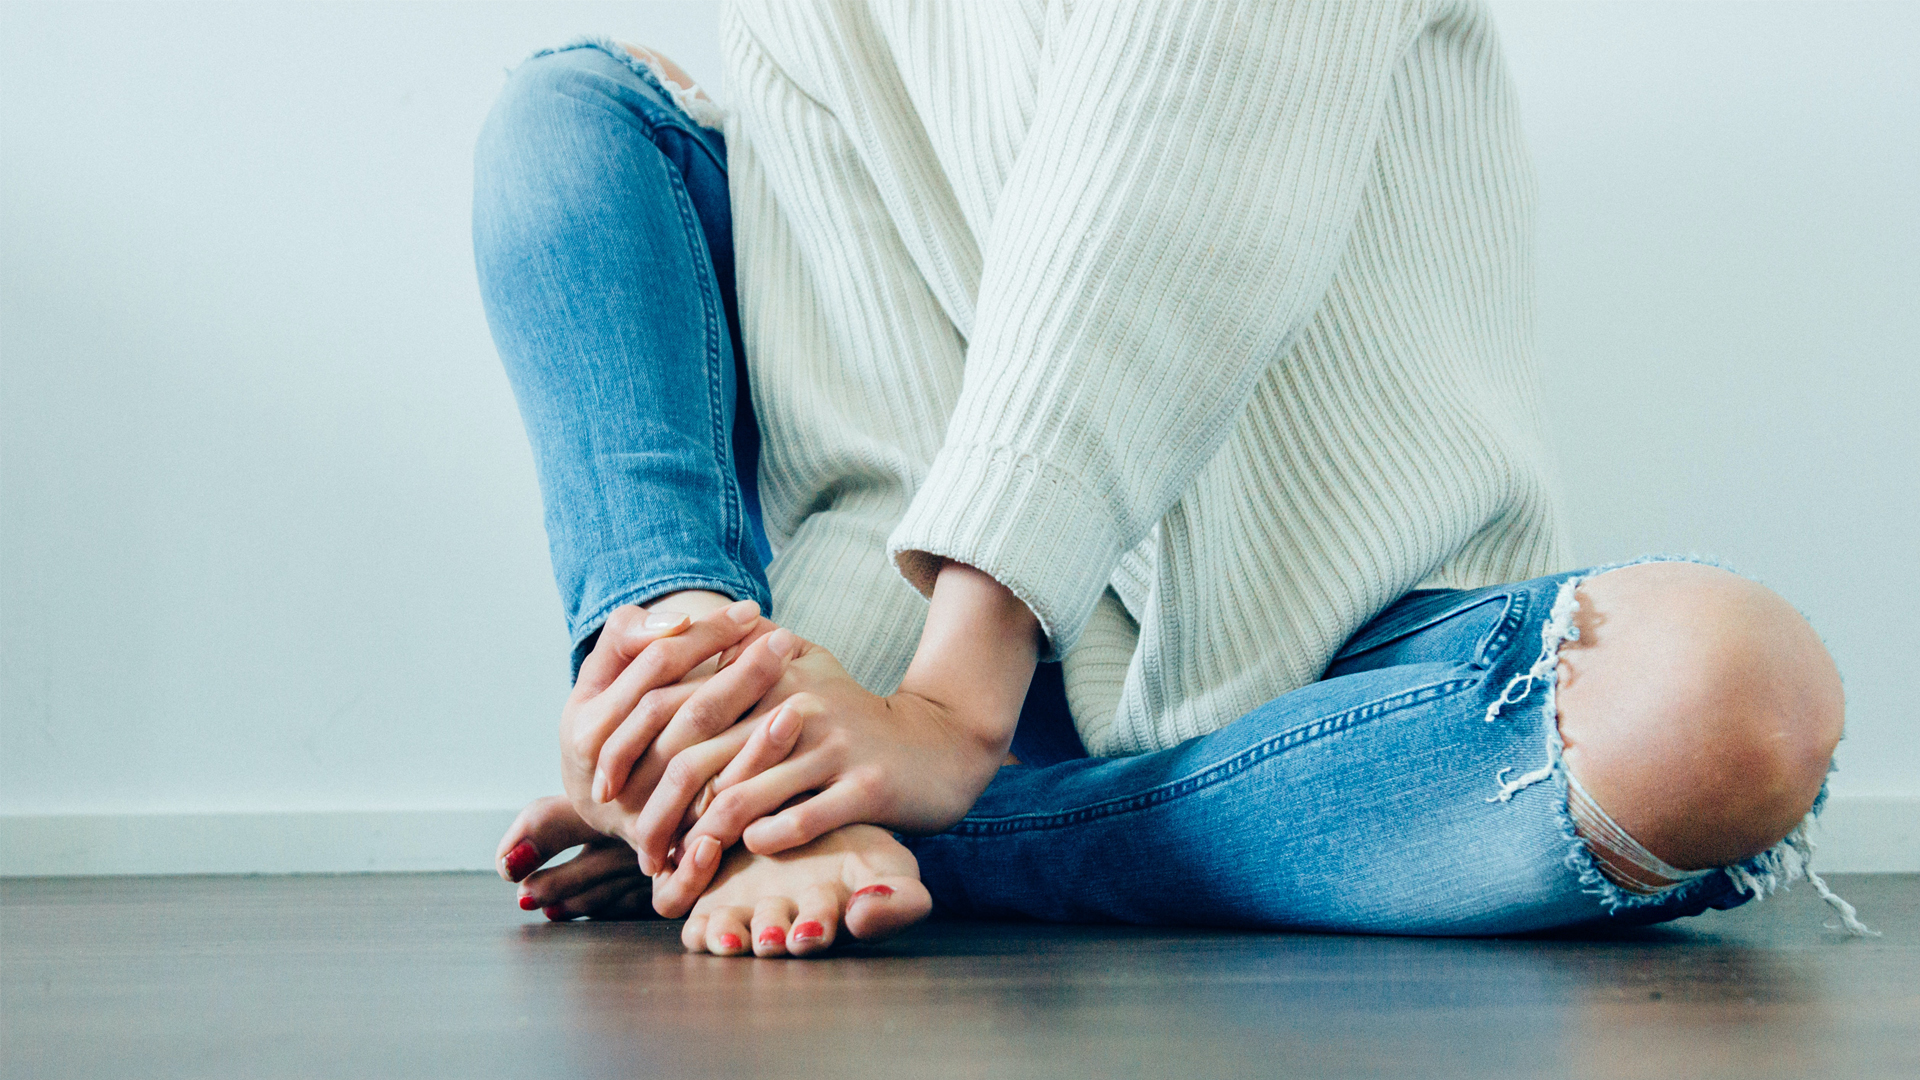 Ripped Jeans Tear Up A Storm After Minister Brands Distressed Denim 'Immoral'